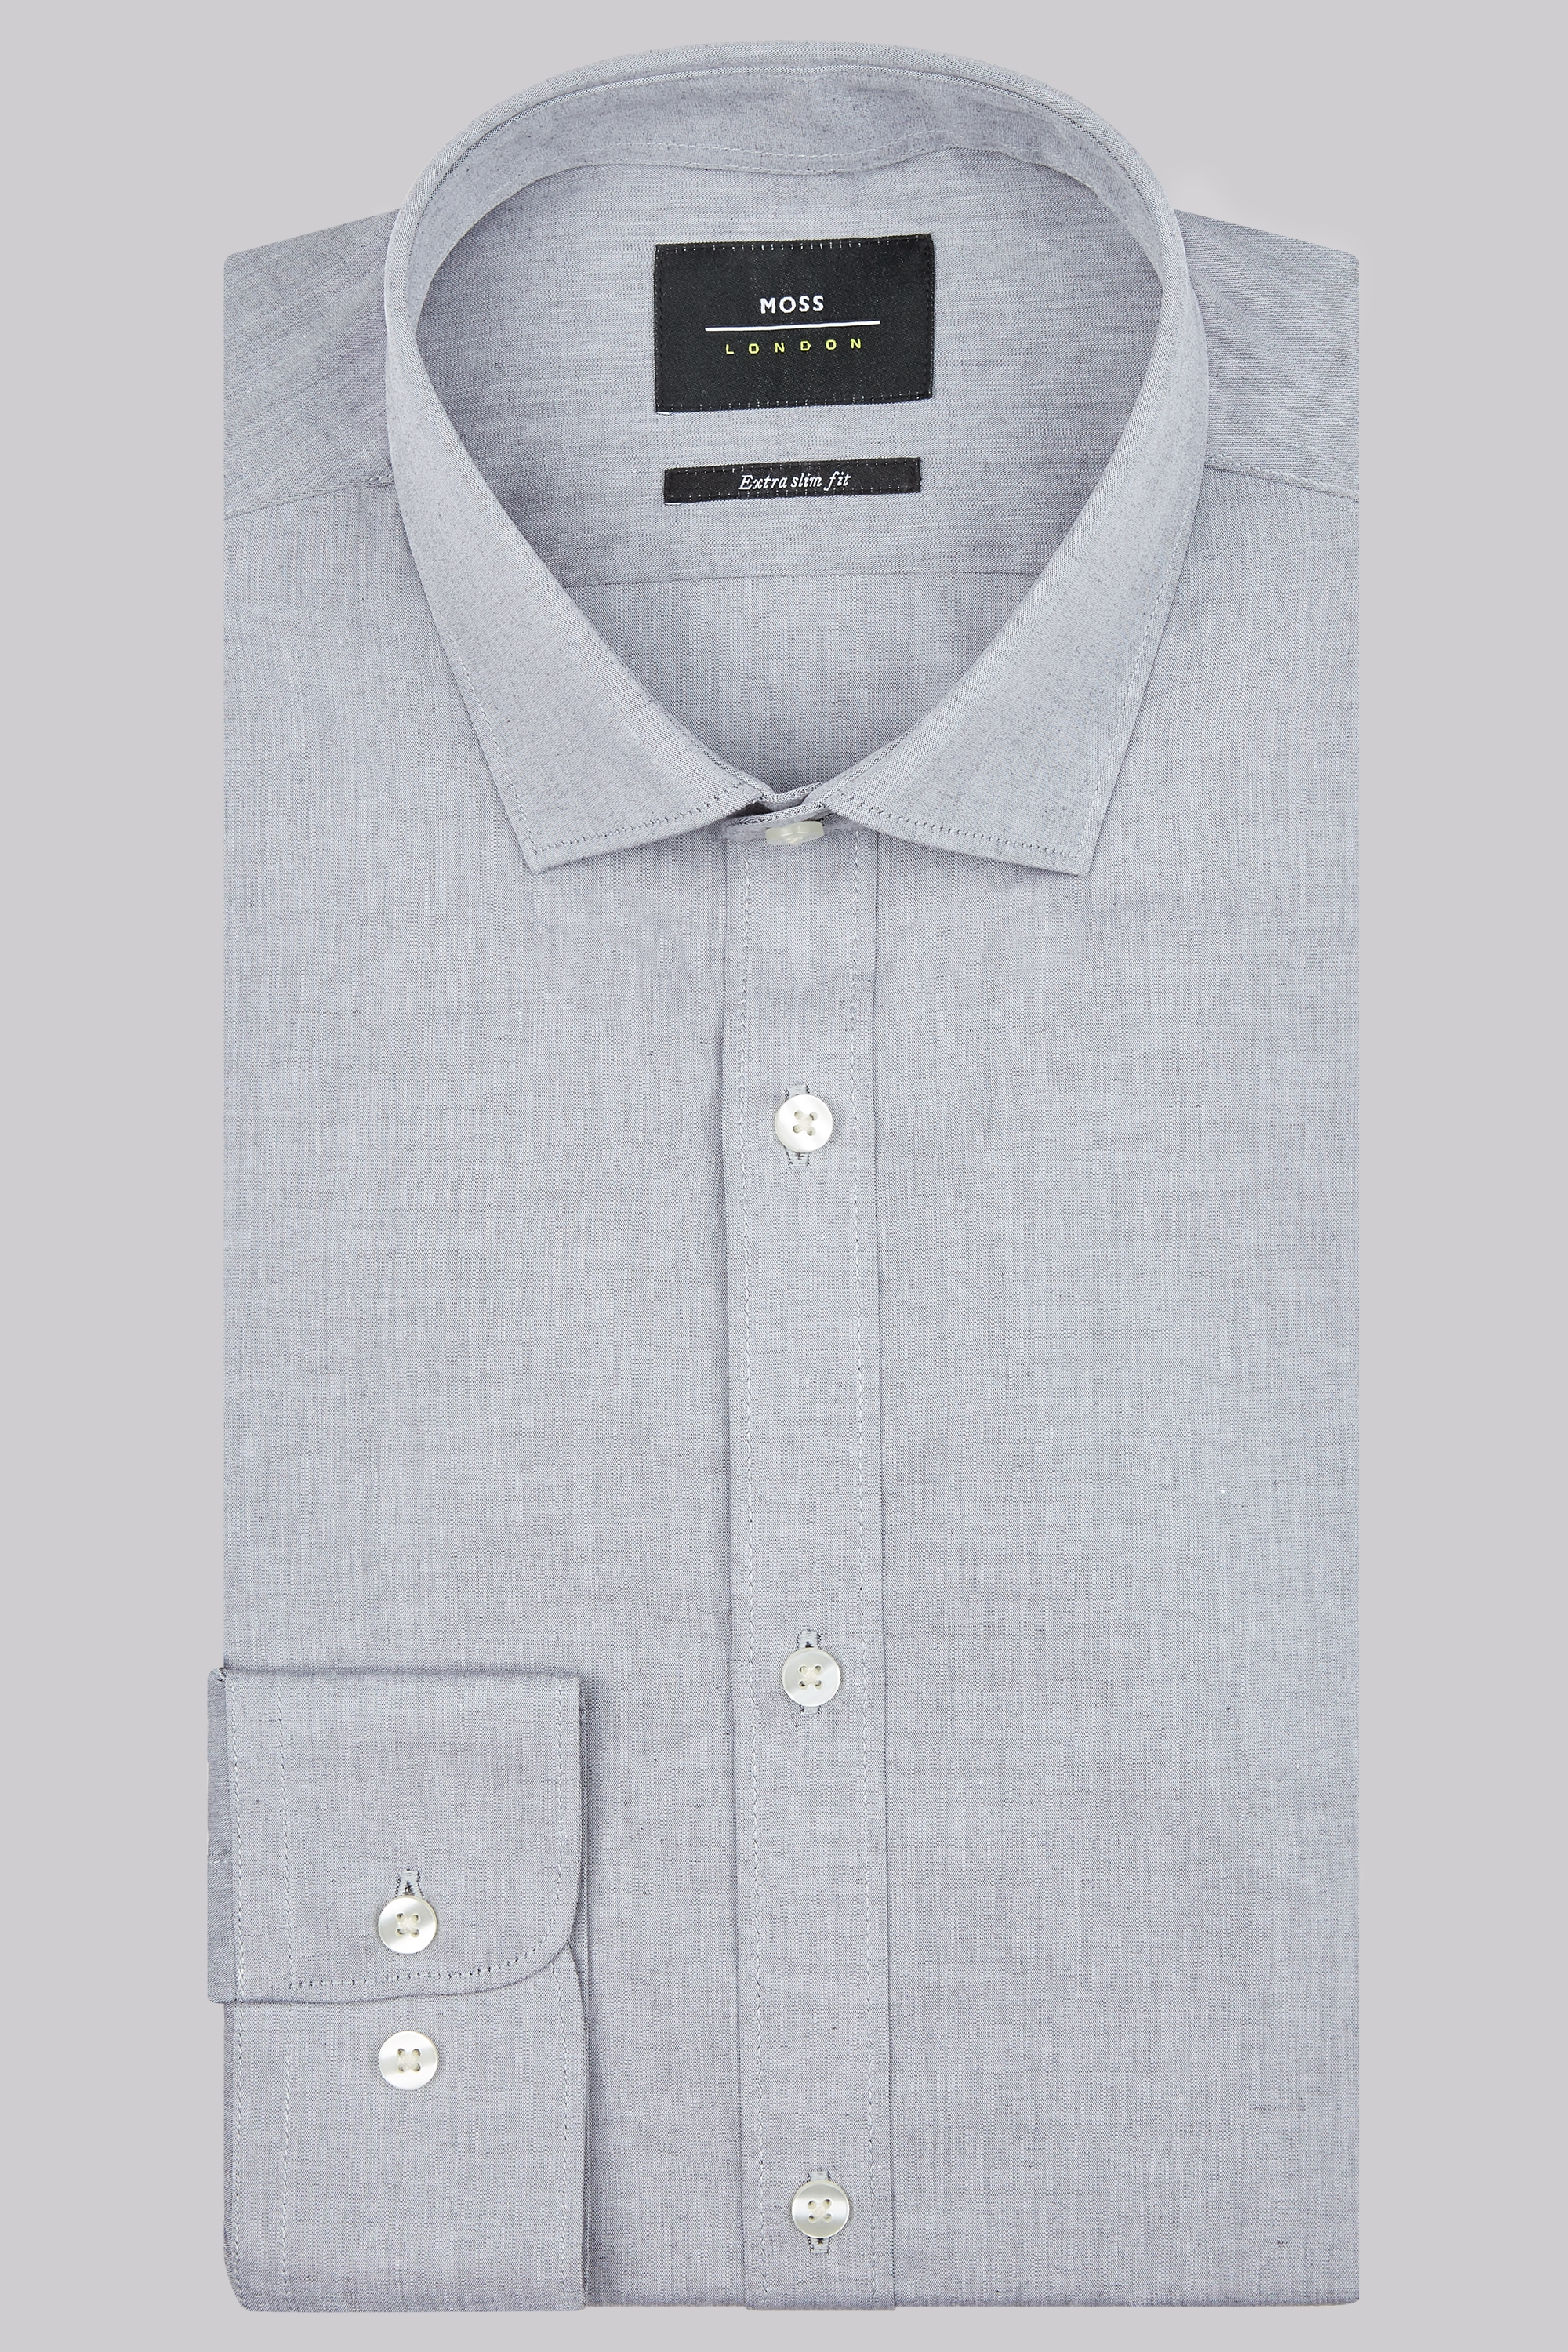 Moss Bros Moss London Premium Extra Slim Fit Grey Single Cuff Chambray Shirt